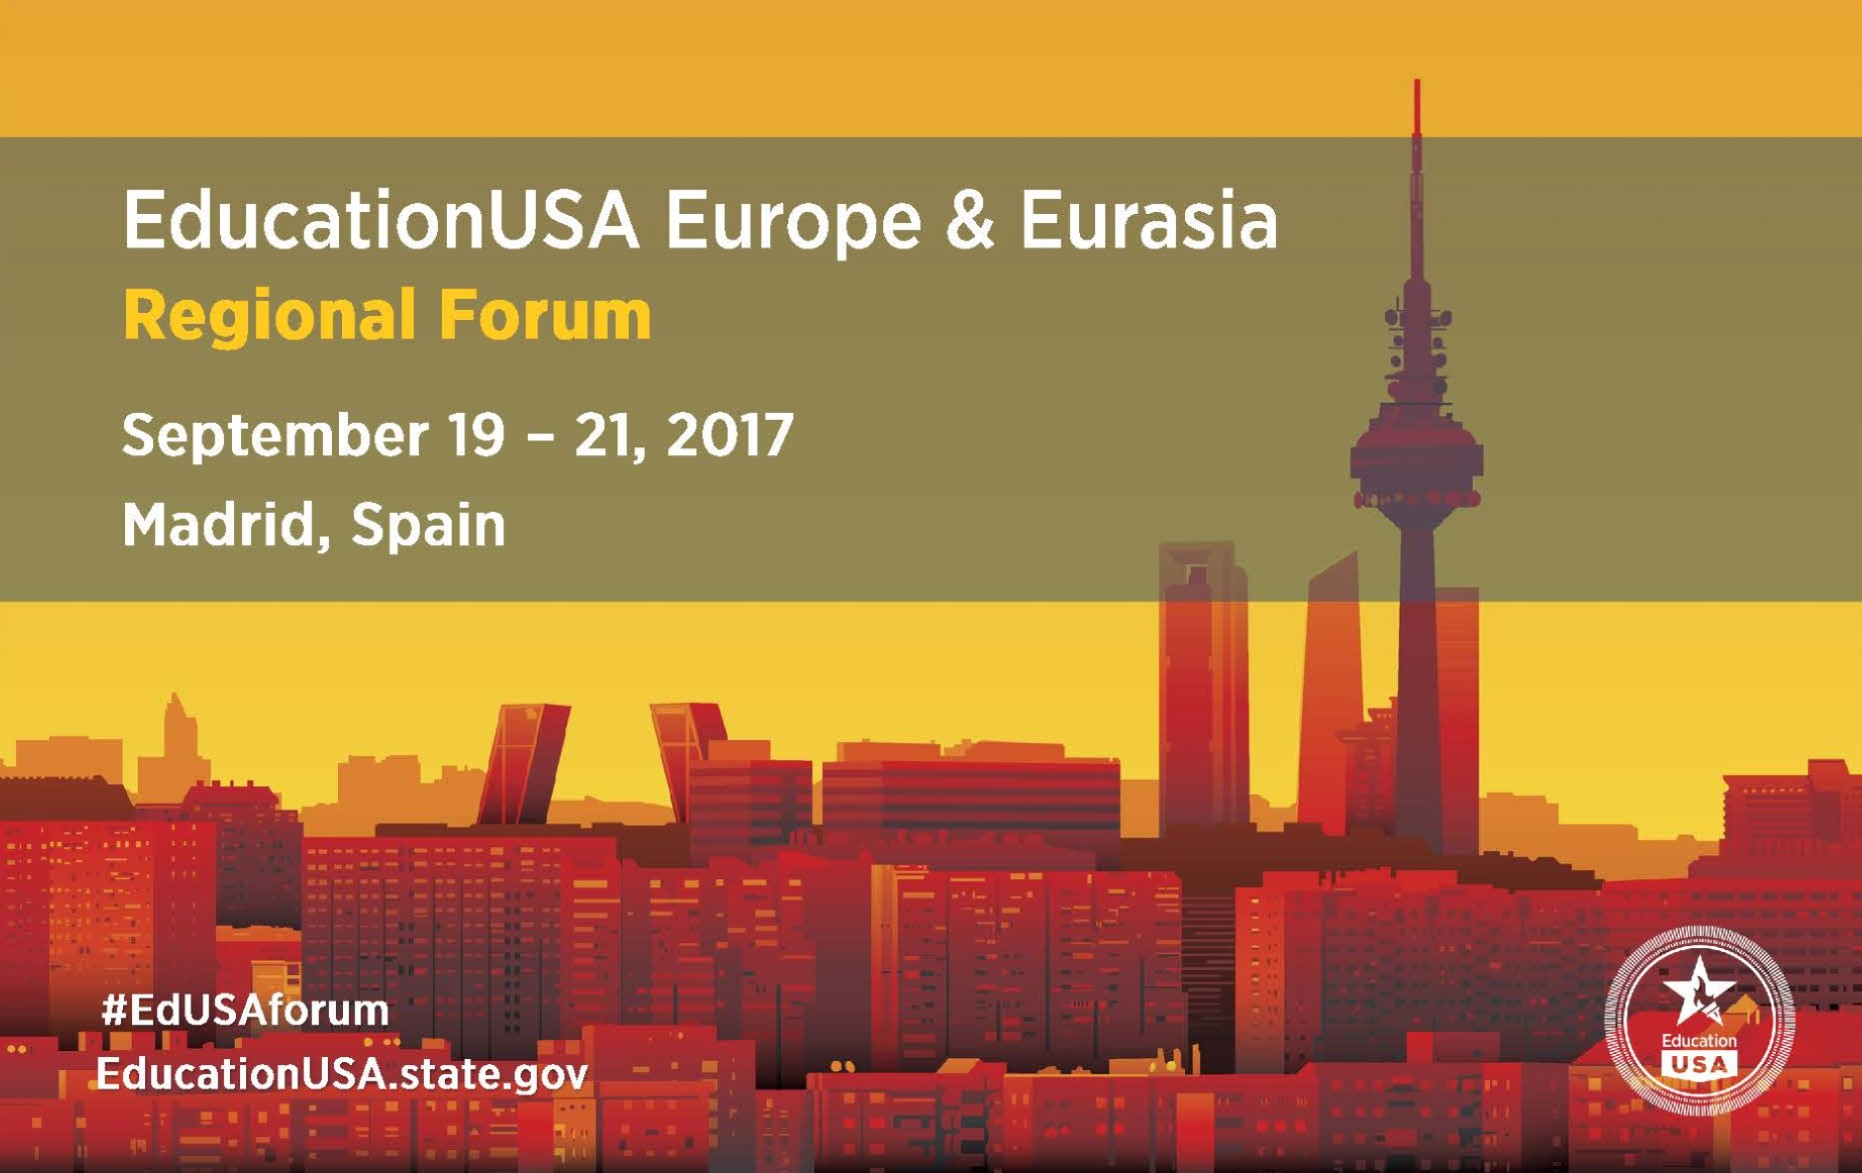 EducationUSA EUR Regional Forum 2017